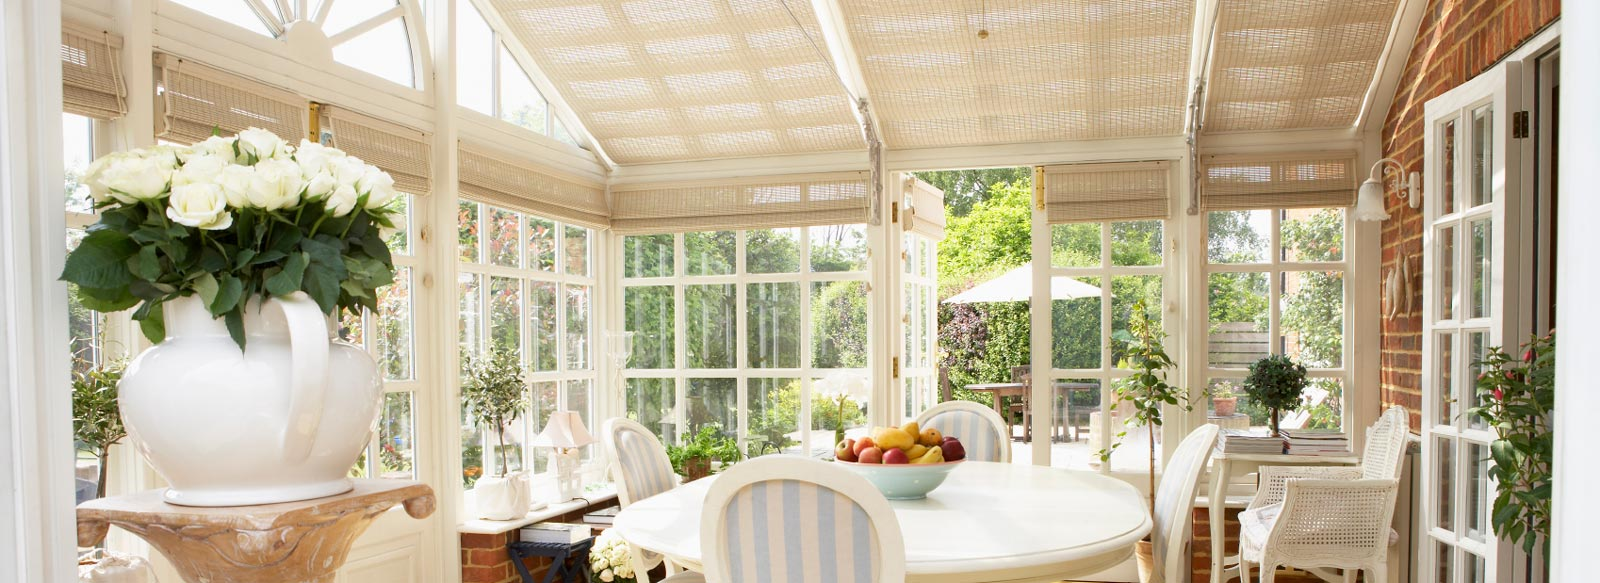 conservatory-roof-pinoleum-blinds-1600